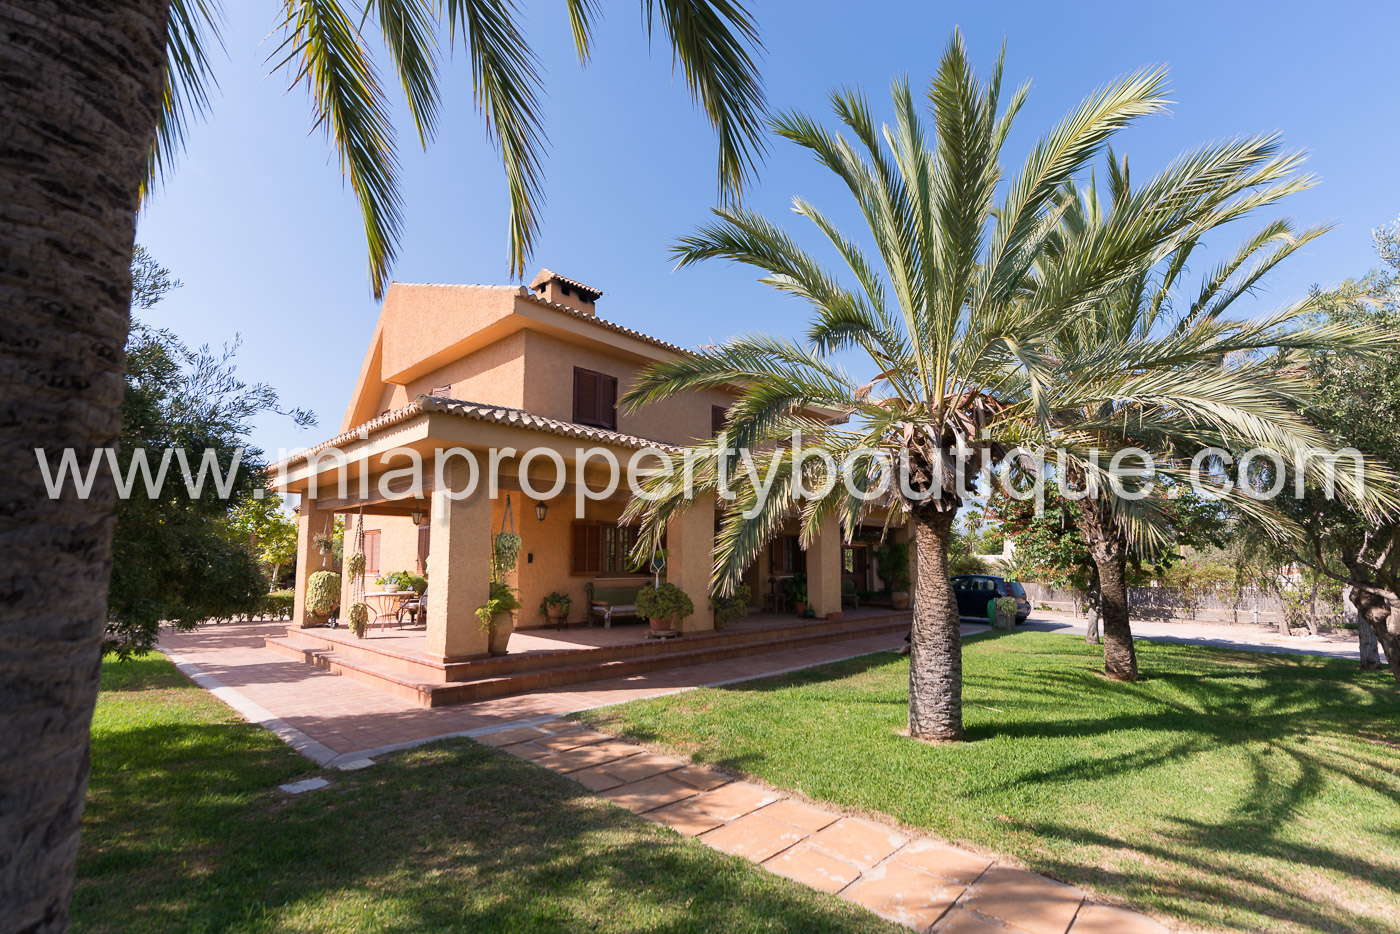 Beautiful family villa nestled in tropical gardens, Los Girasoles, Alicante